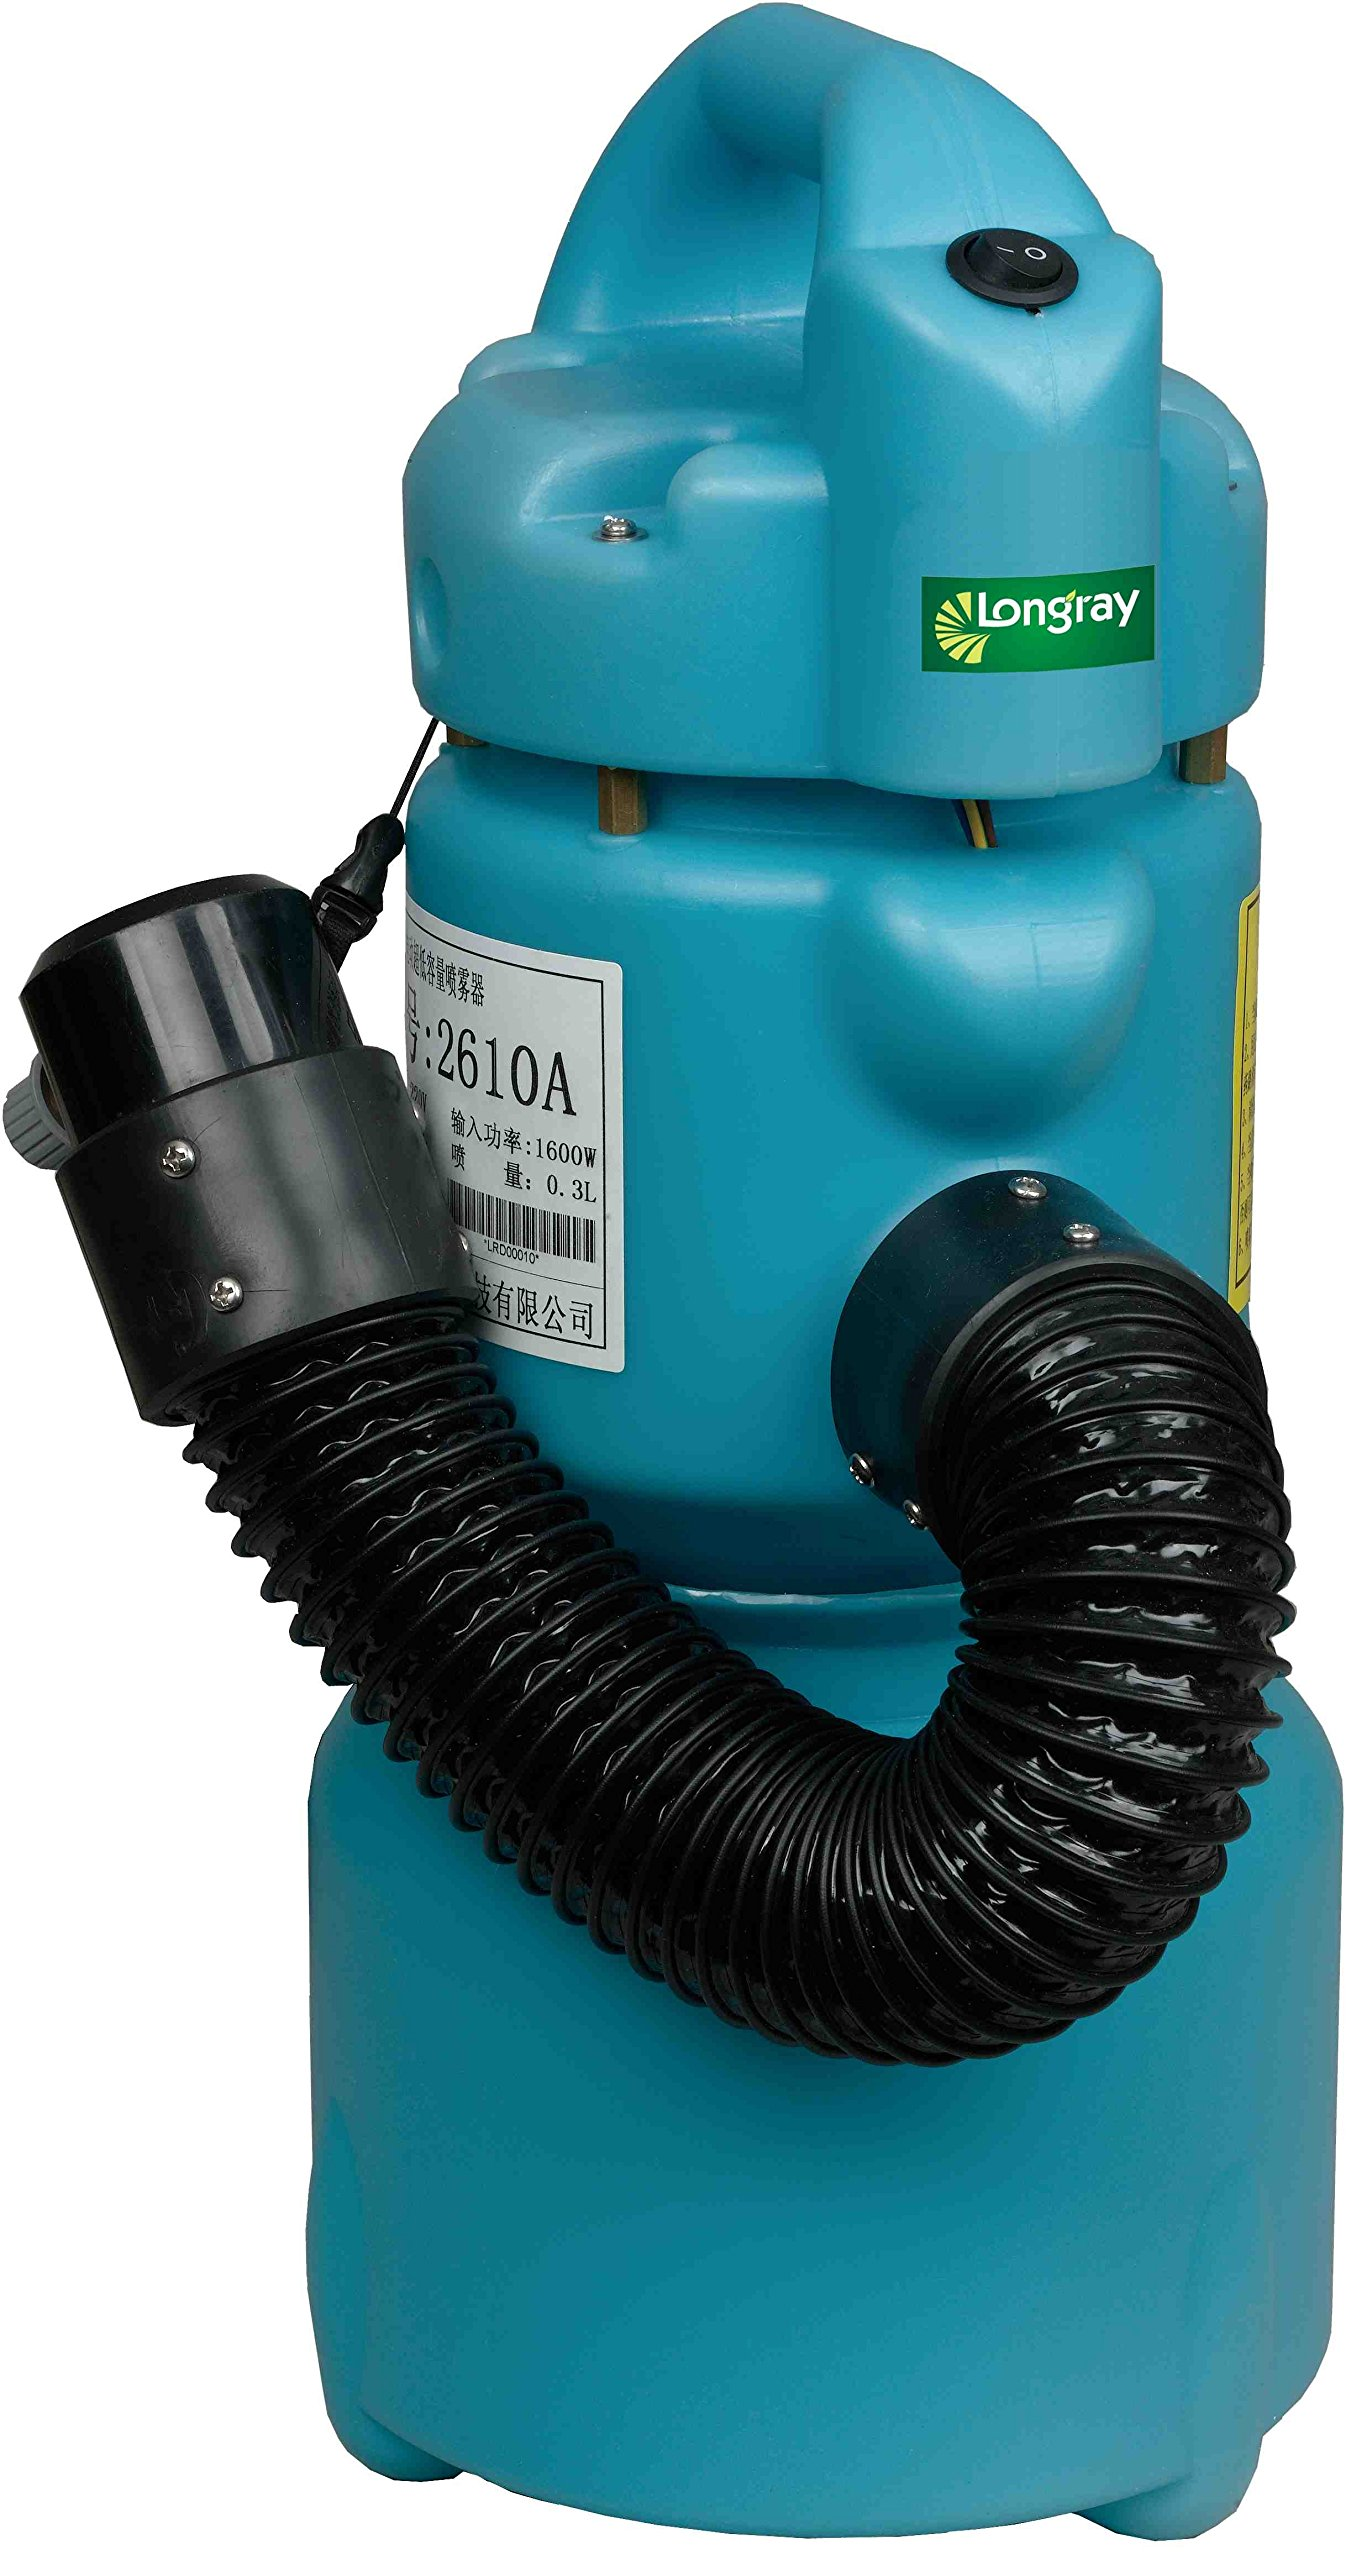 Longray Basic ULV Fogger with Adjustable Flow & Flex-Hose by Longray